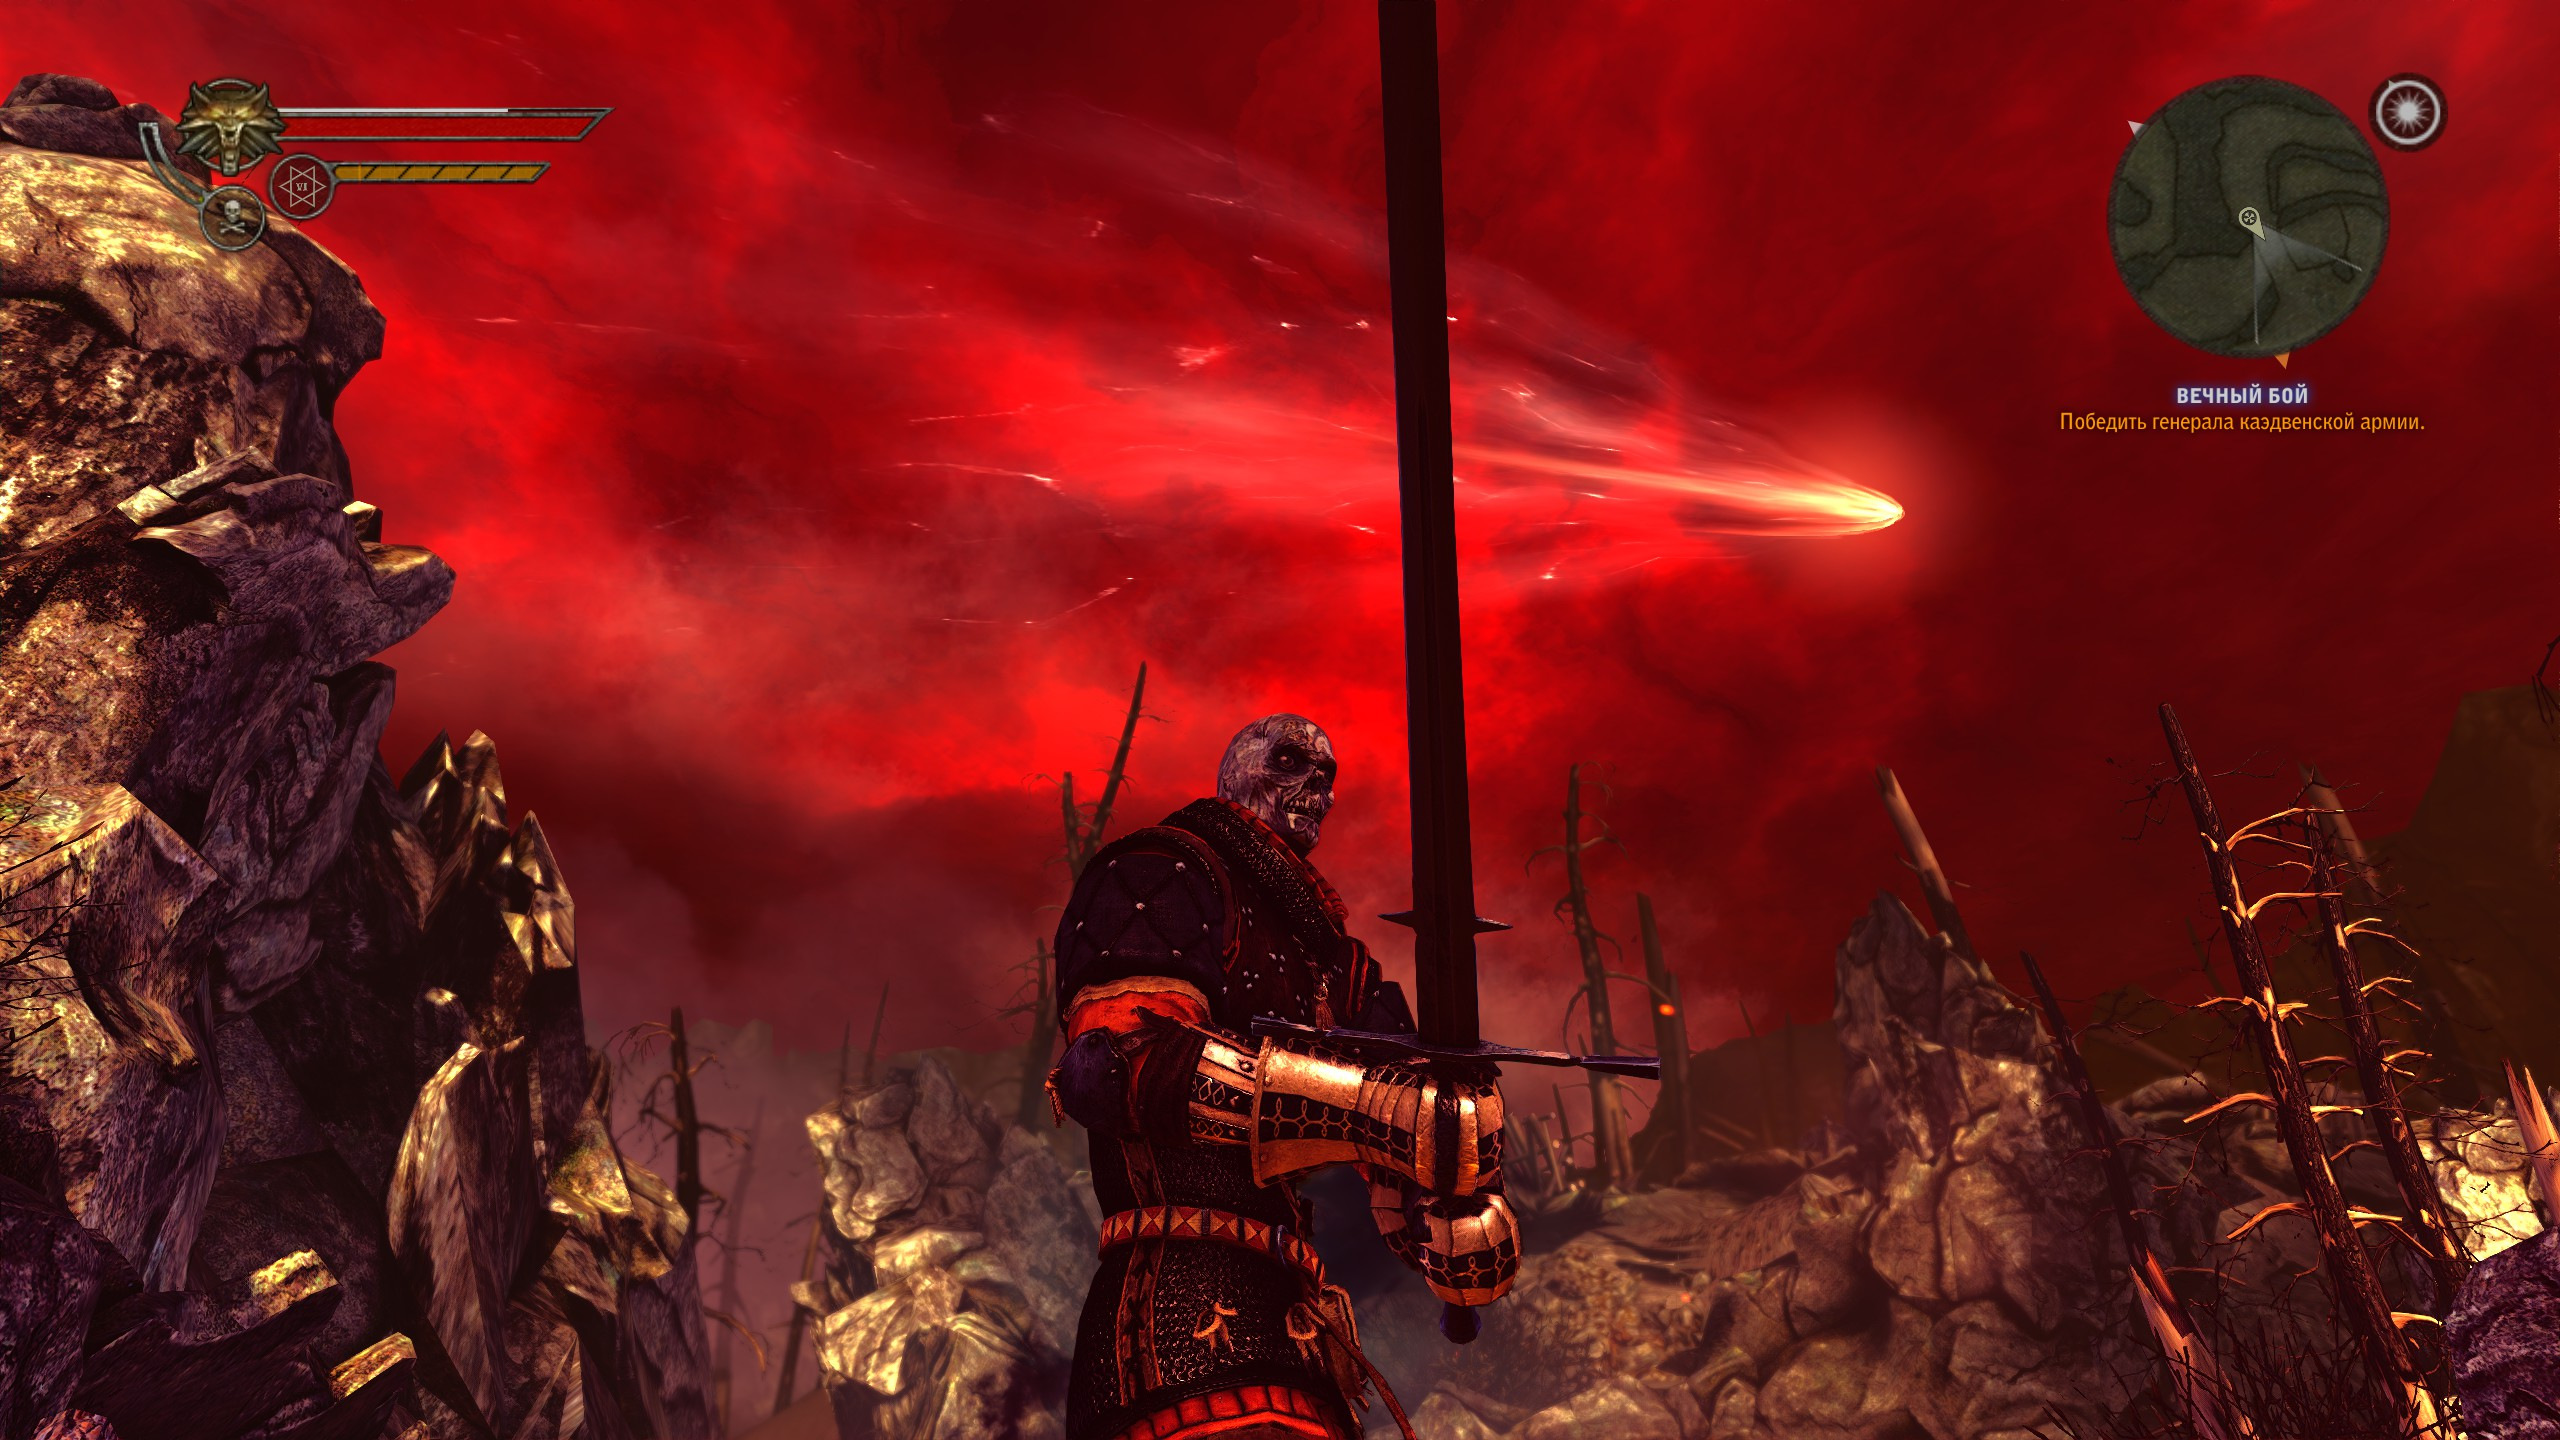 20180715180328_1.jpg - Witcher 2: Assassins of Kings, the